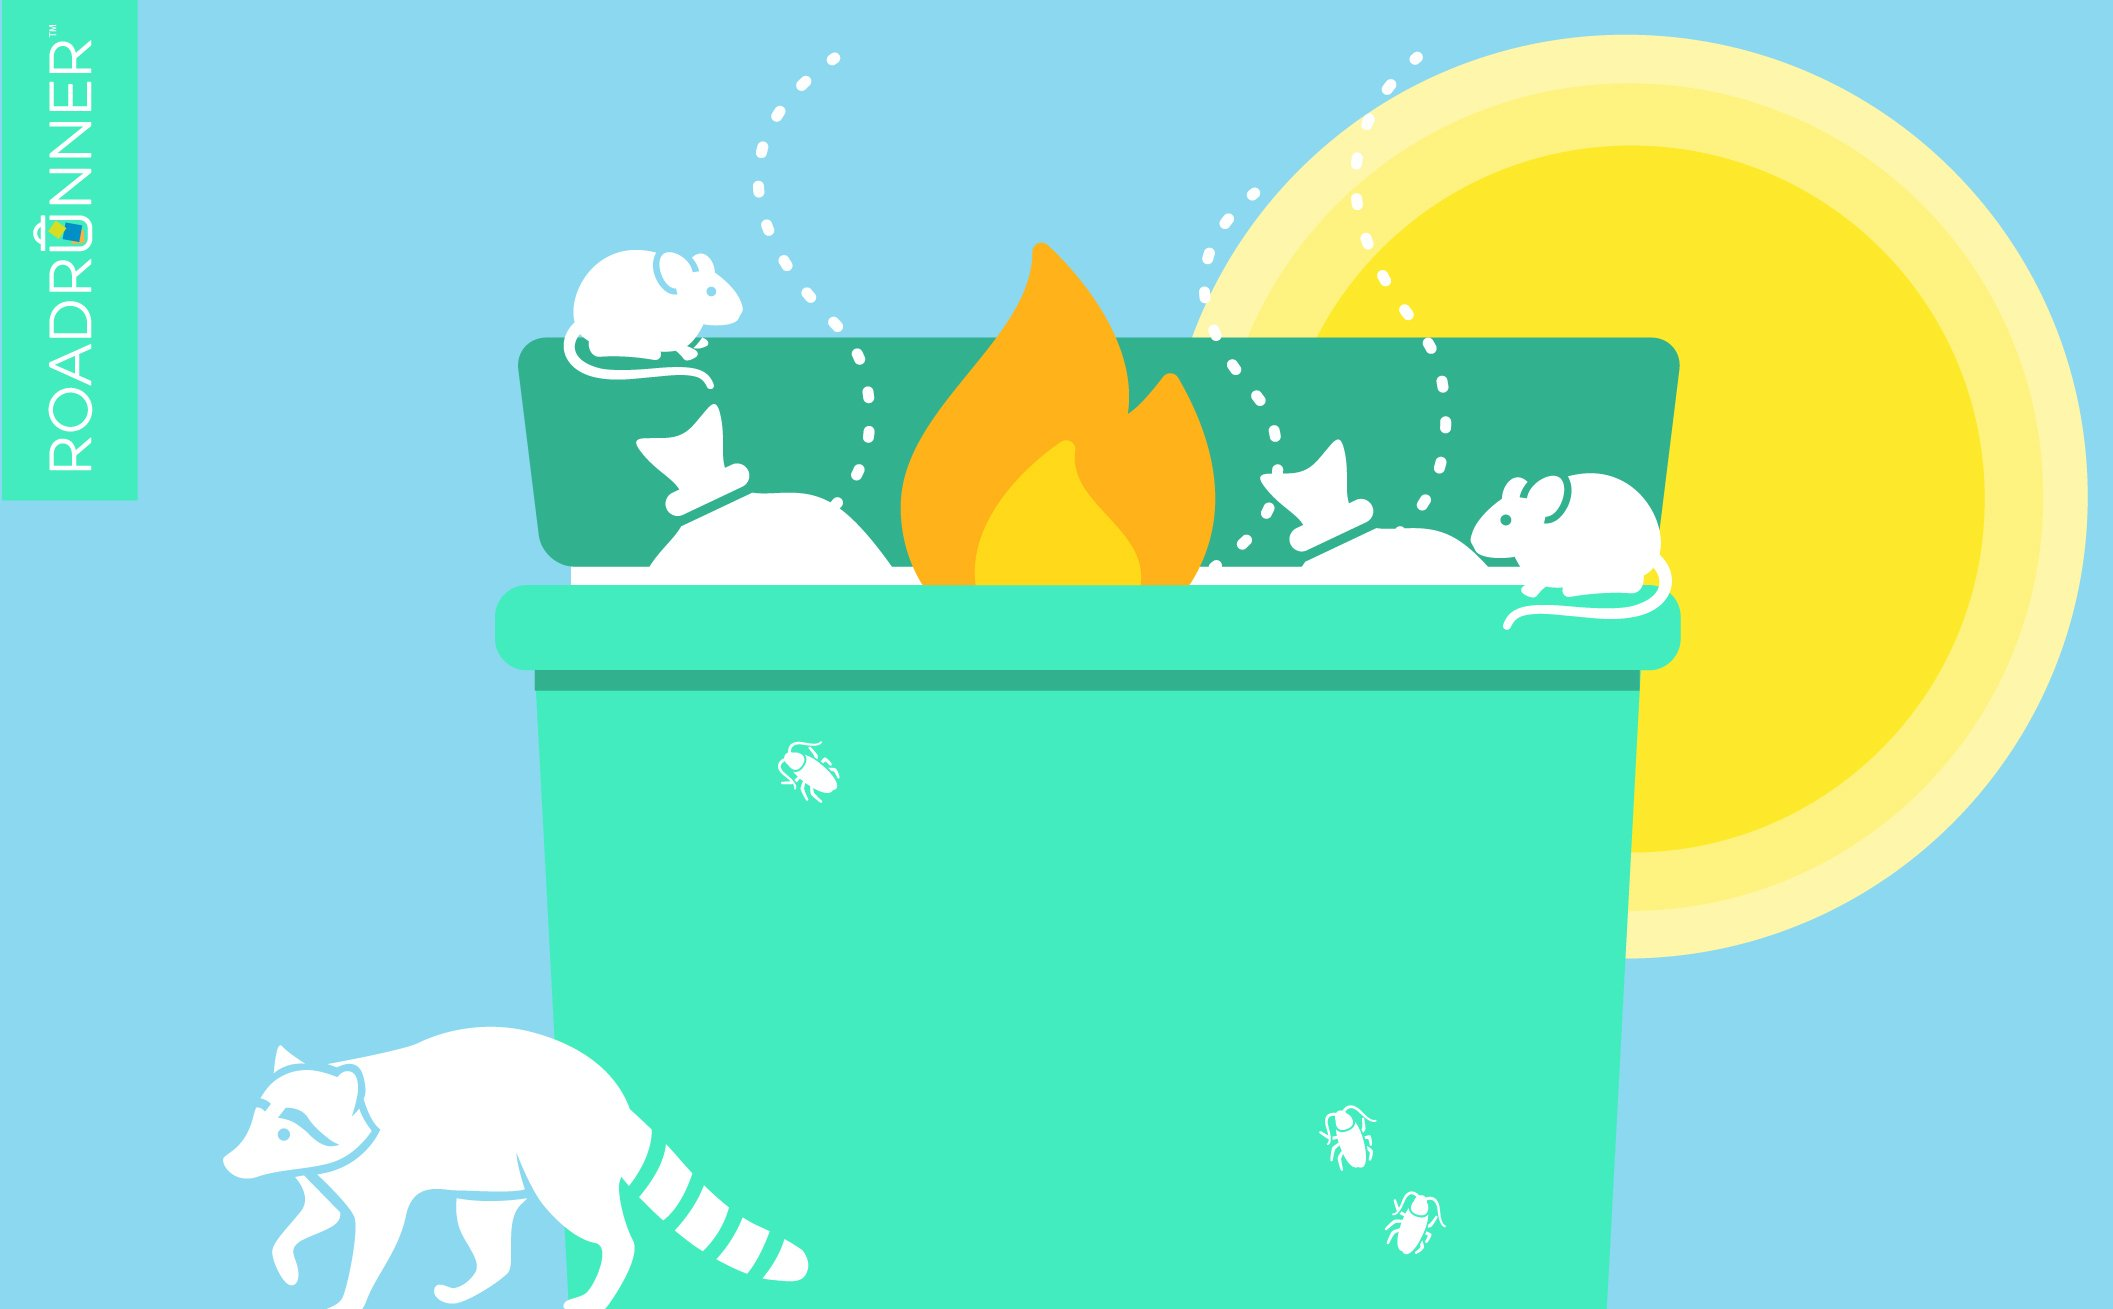 Why Does Hot Weather Make Waste Management More Difficult?